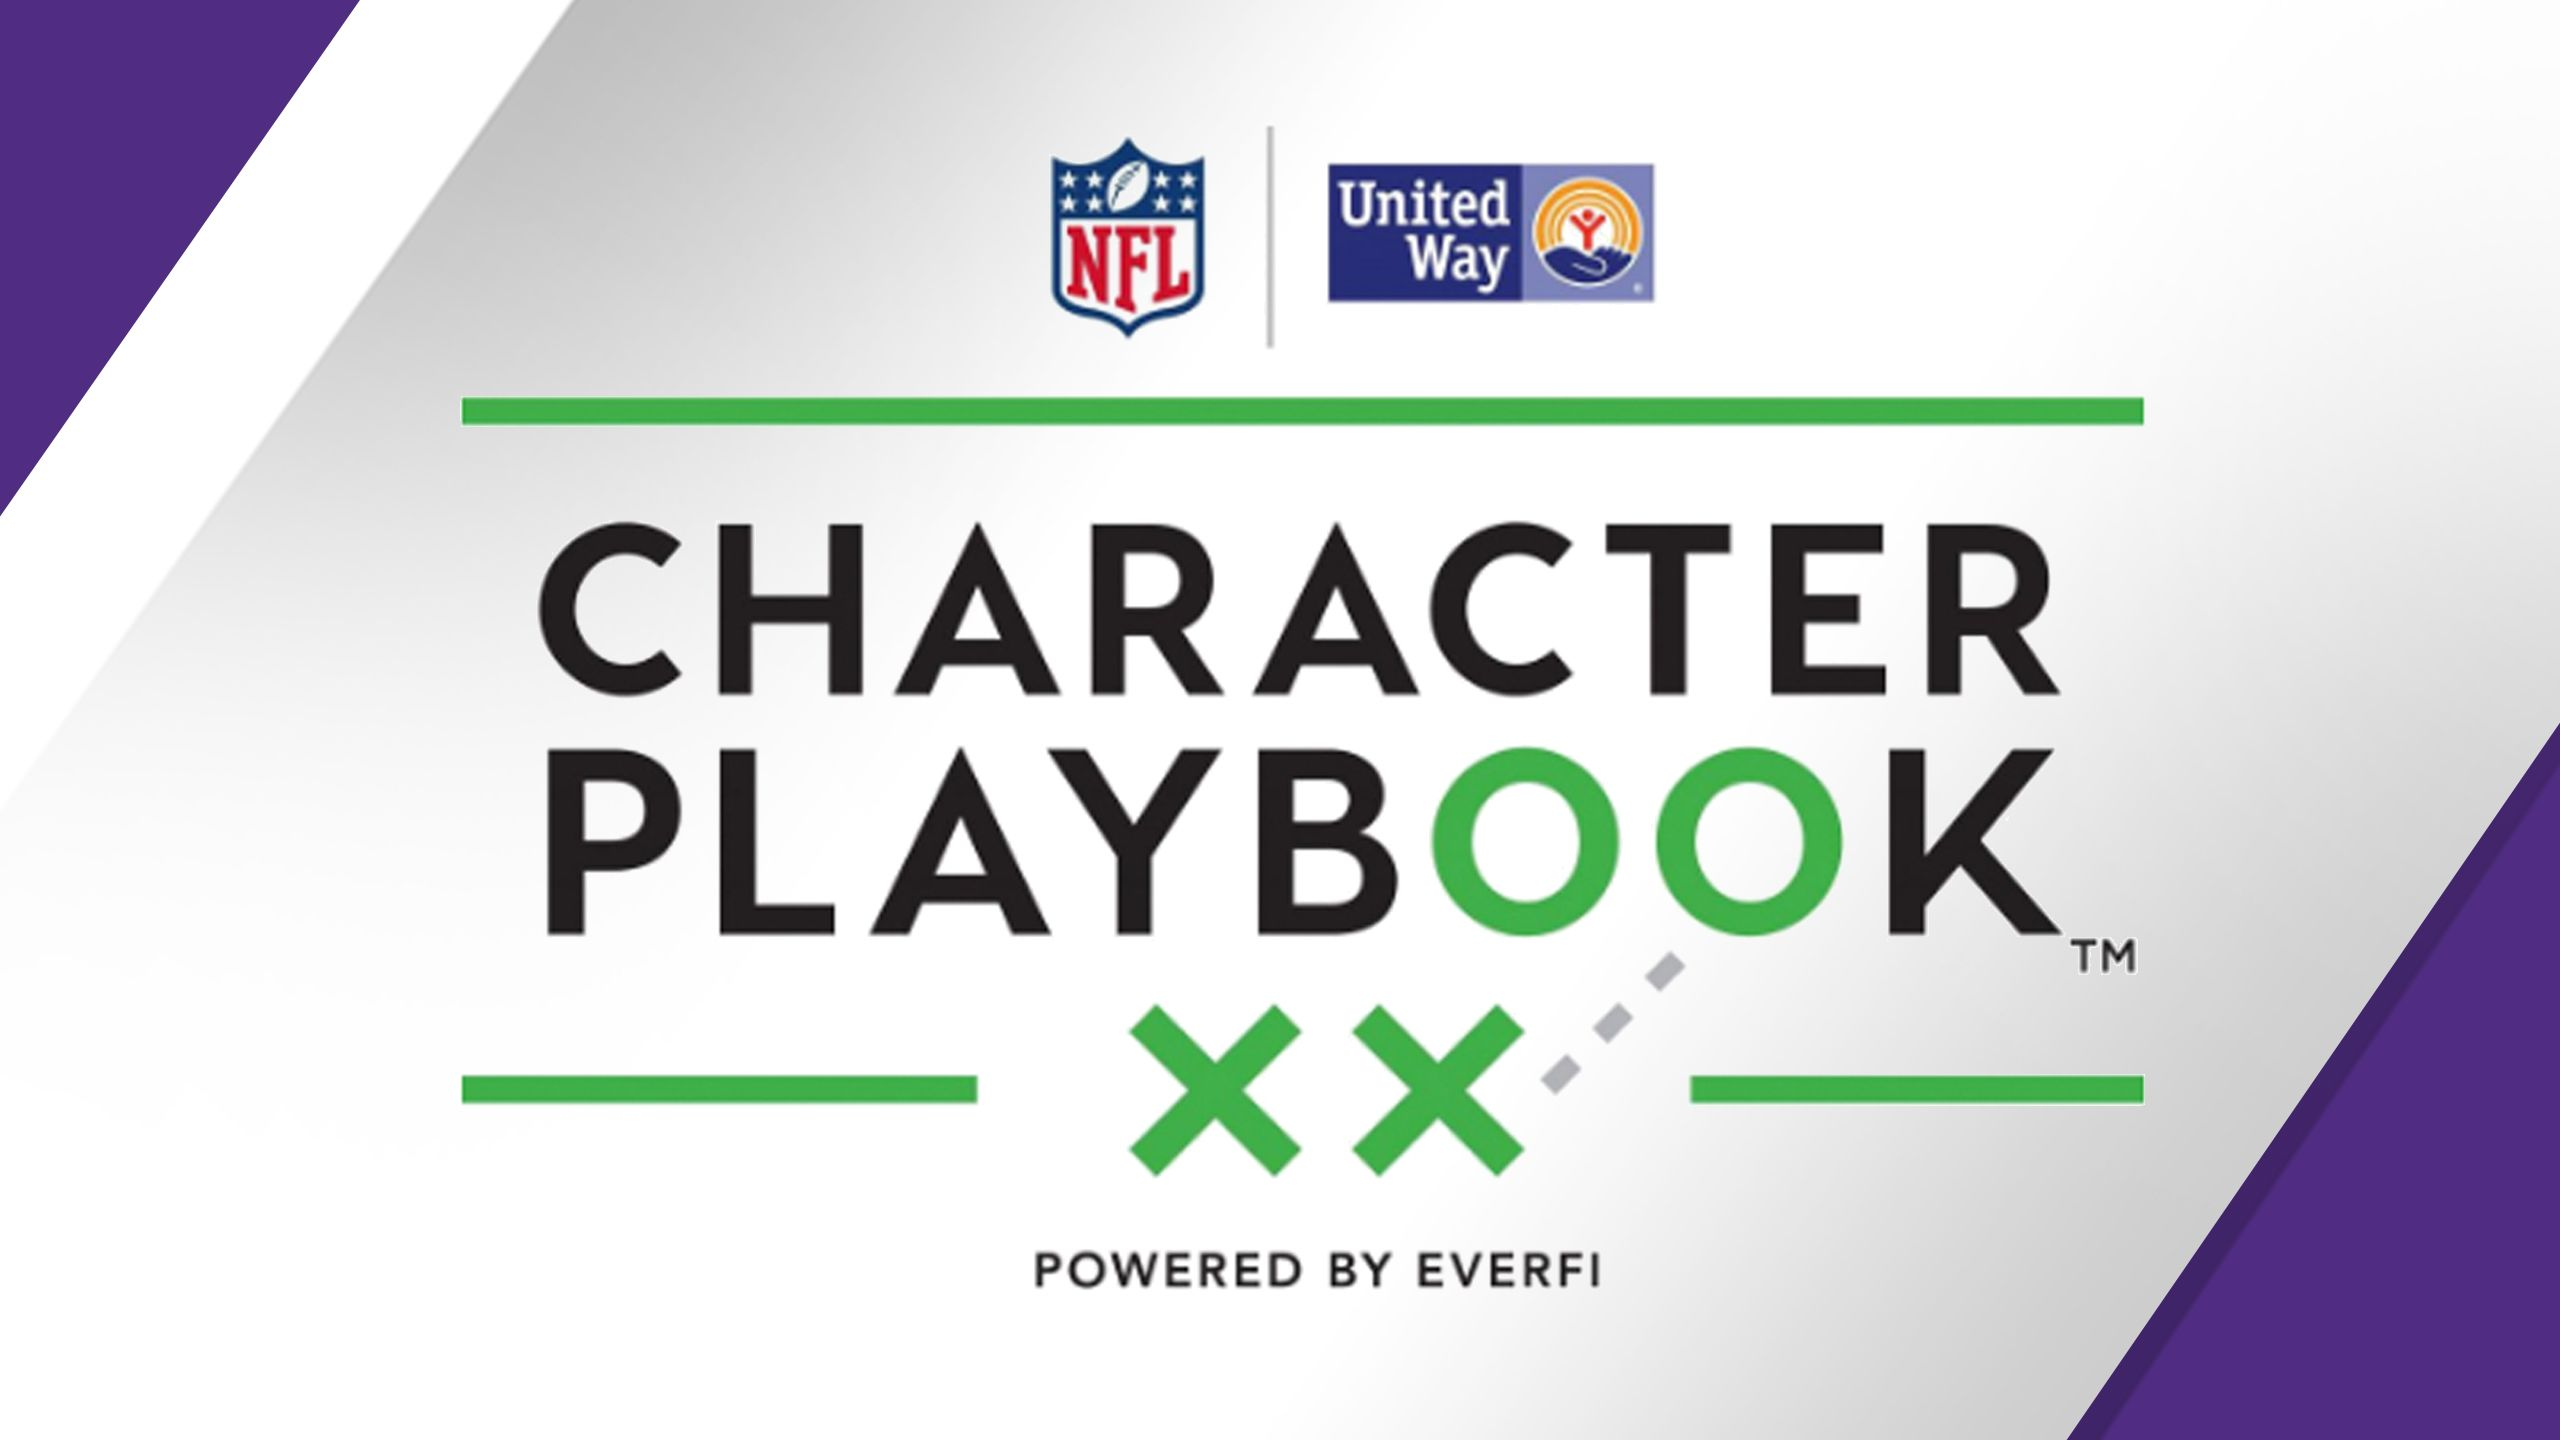 CharacterPlaybook_1600x400_v1_current